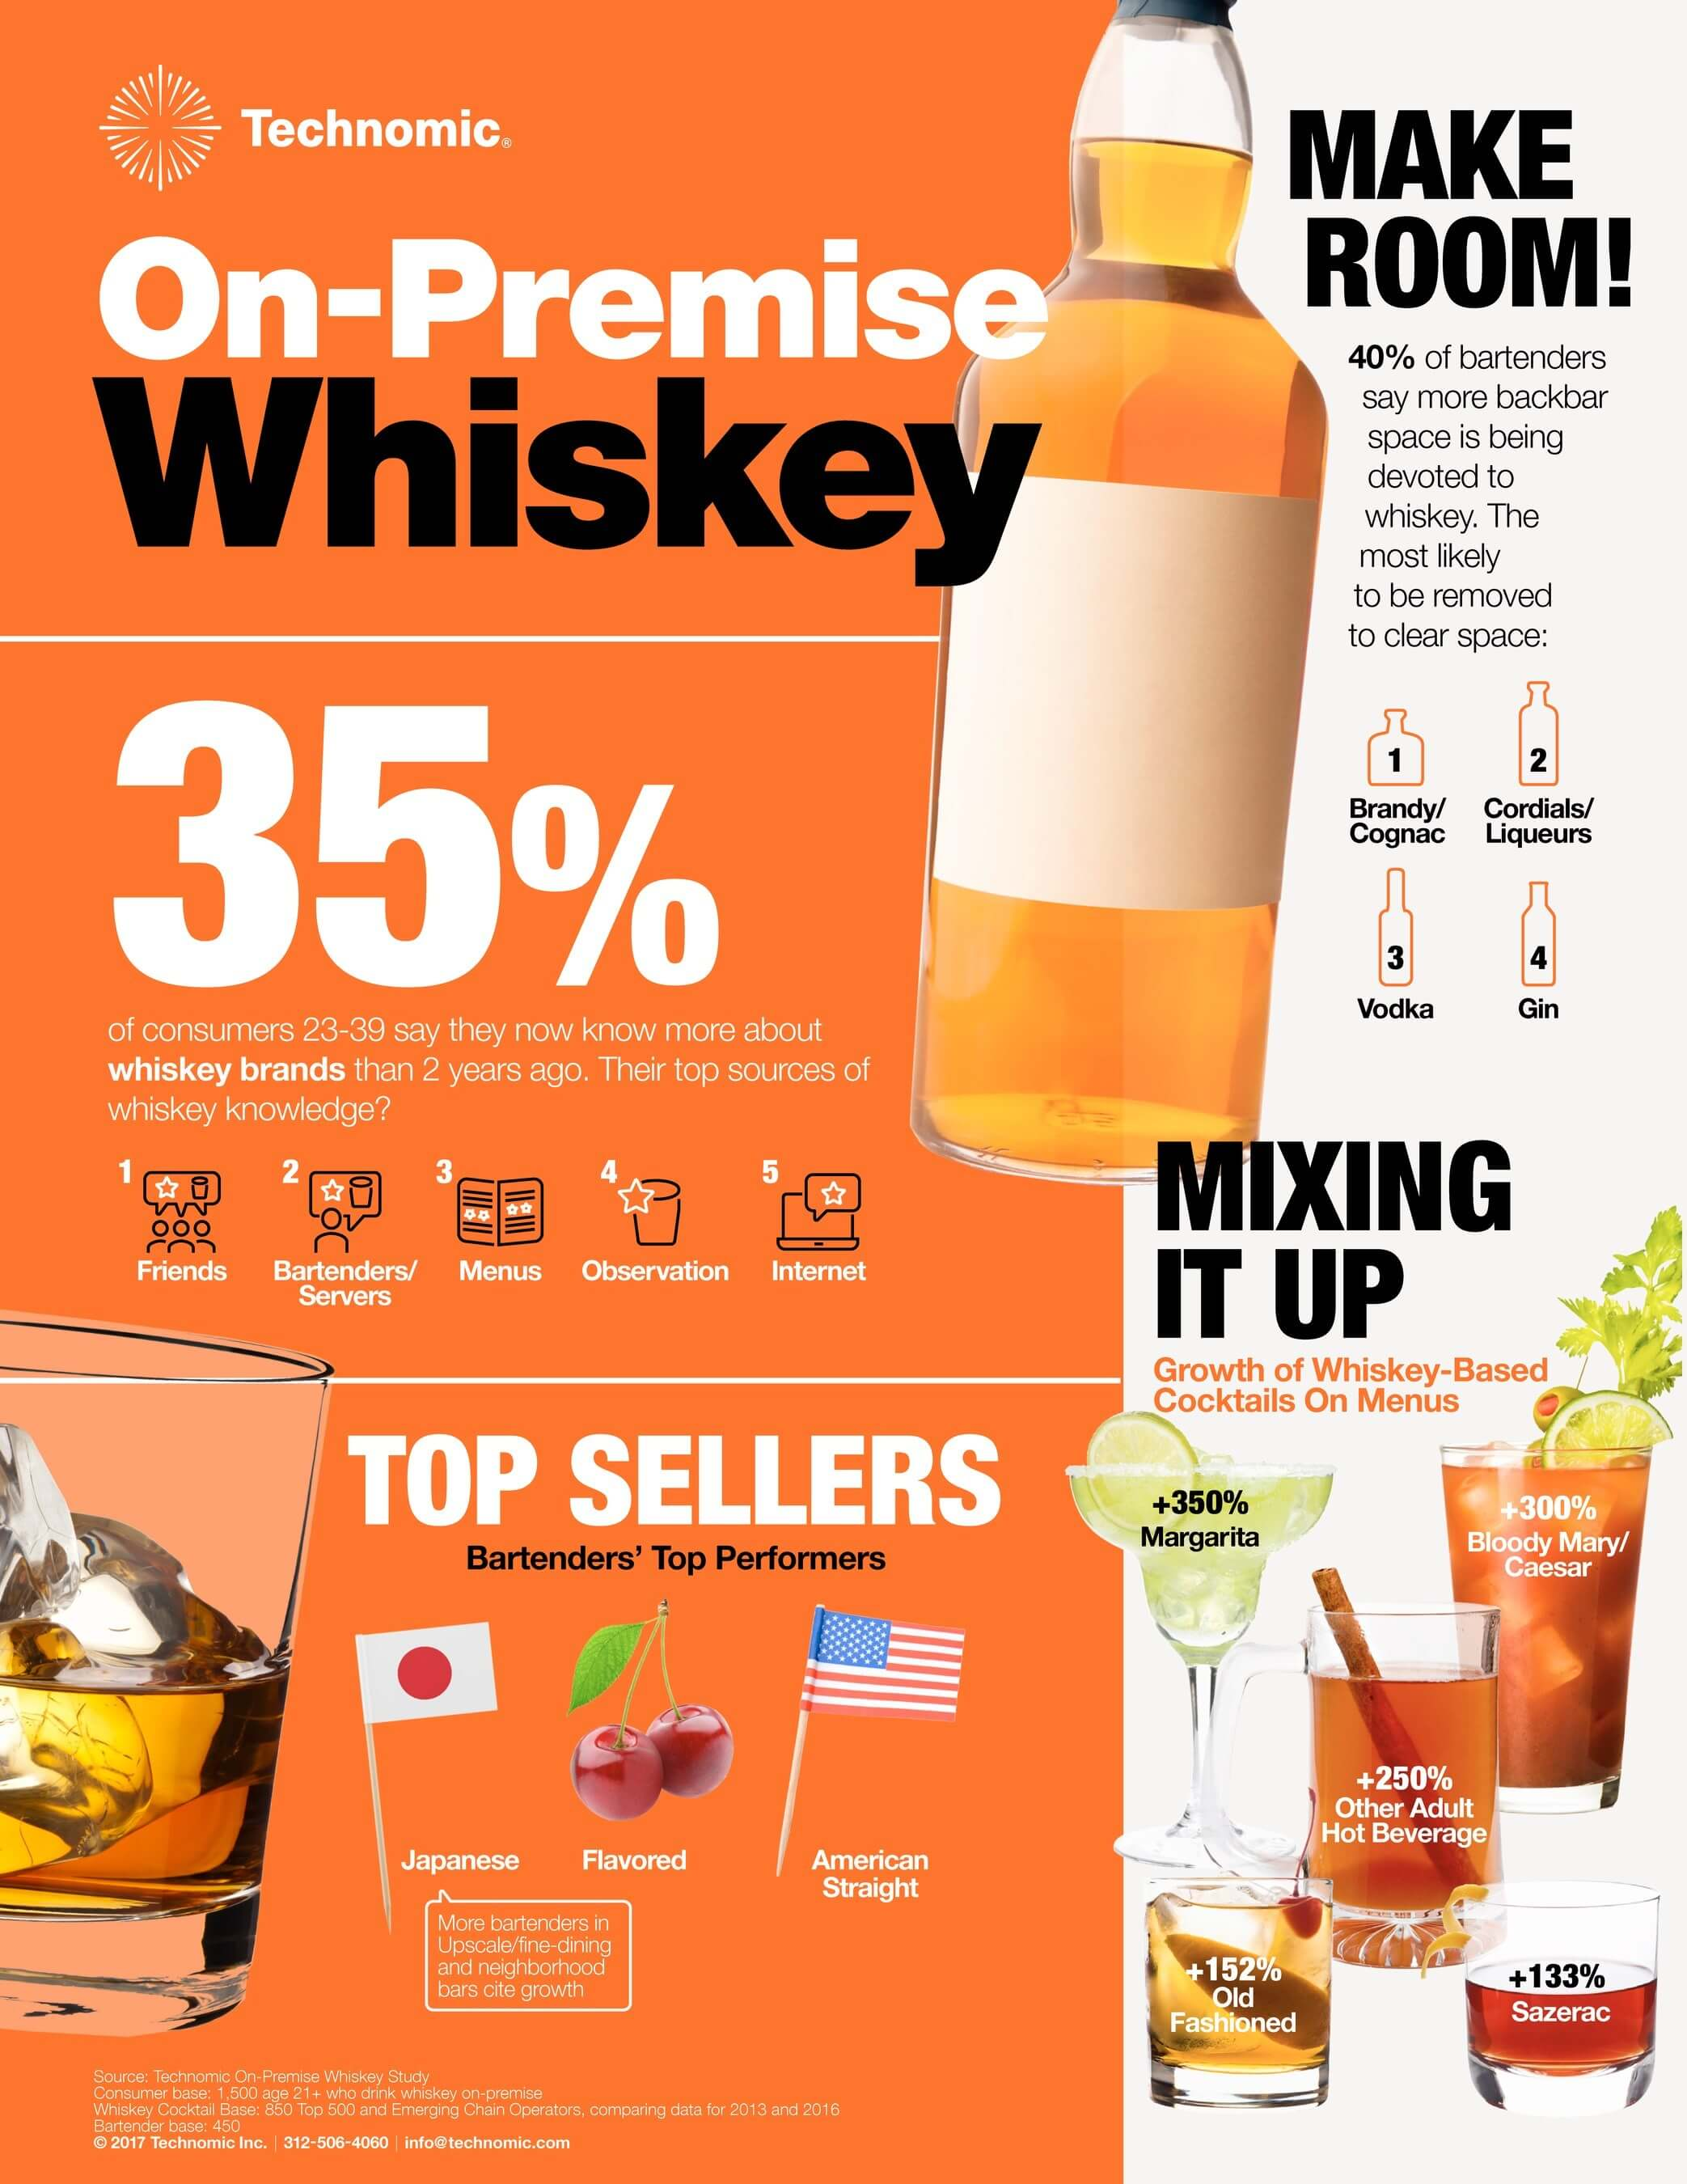 2017 Technomic On-premise whiskey study infographic